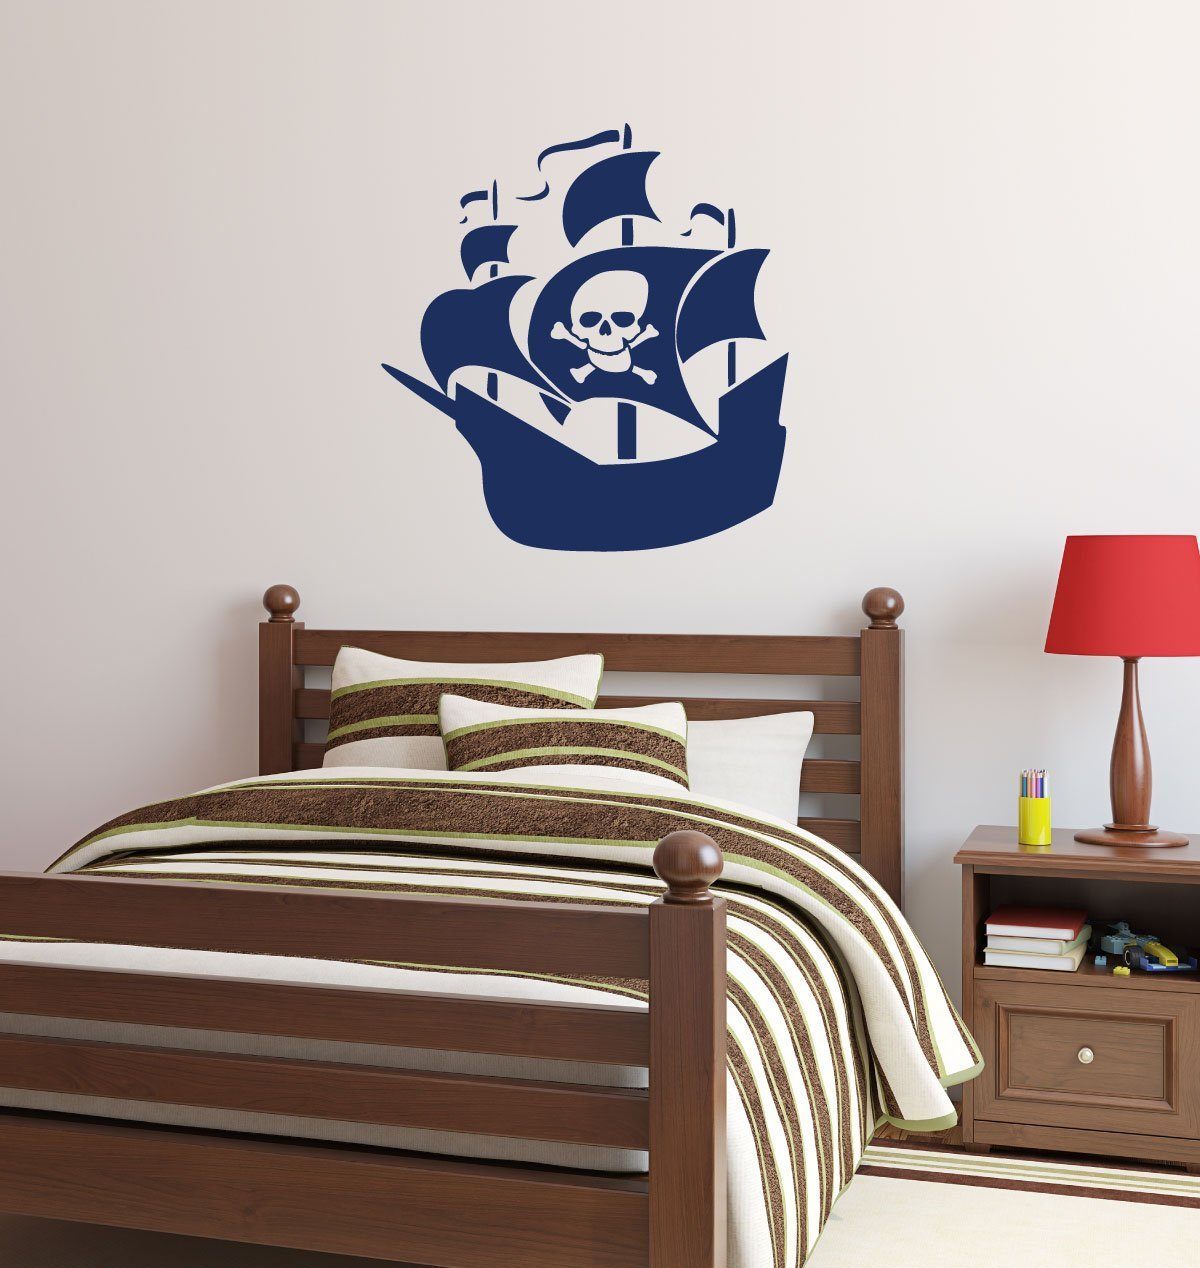 Pirates Kids Wall Decal: Pirate Ship Wall Decal Vinyl Sticker For Kids